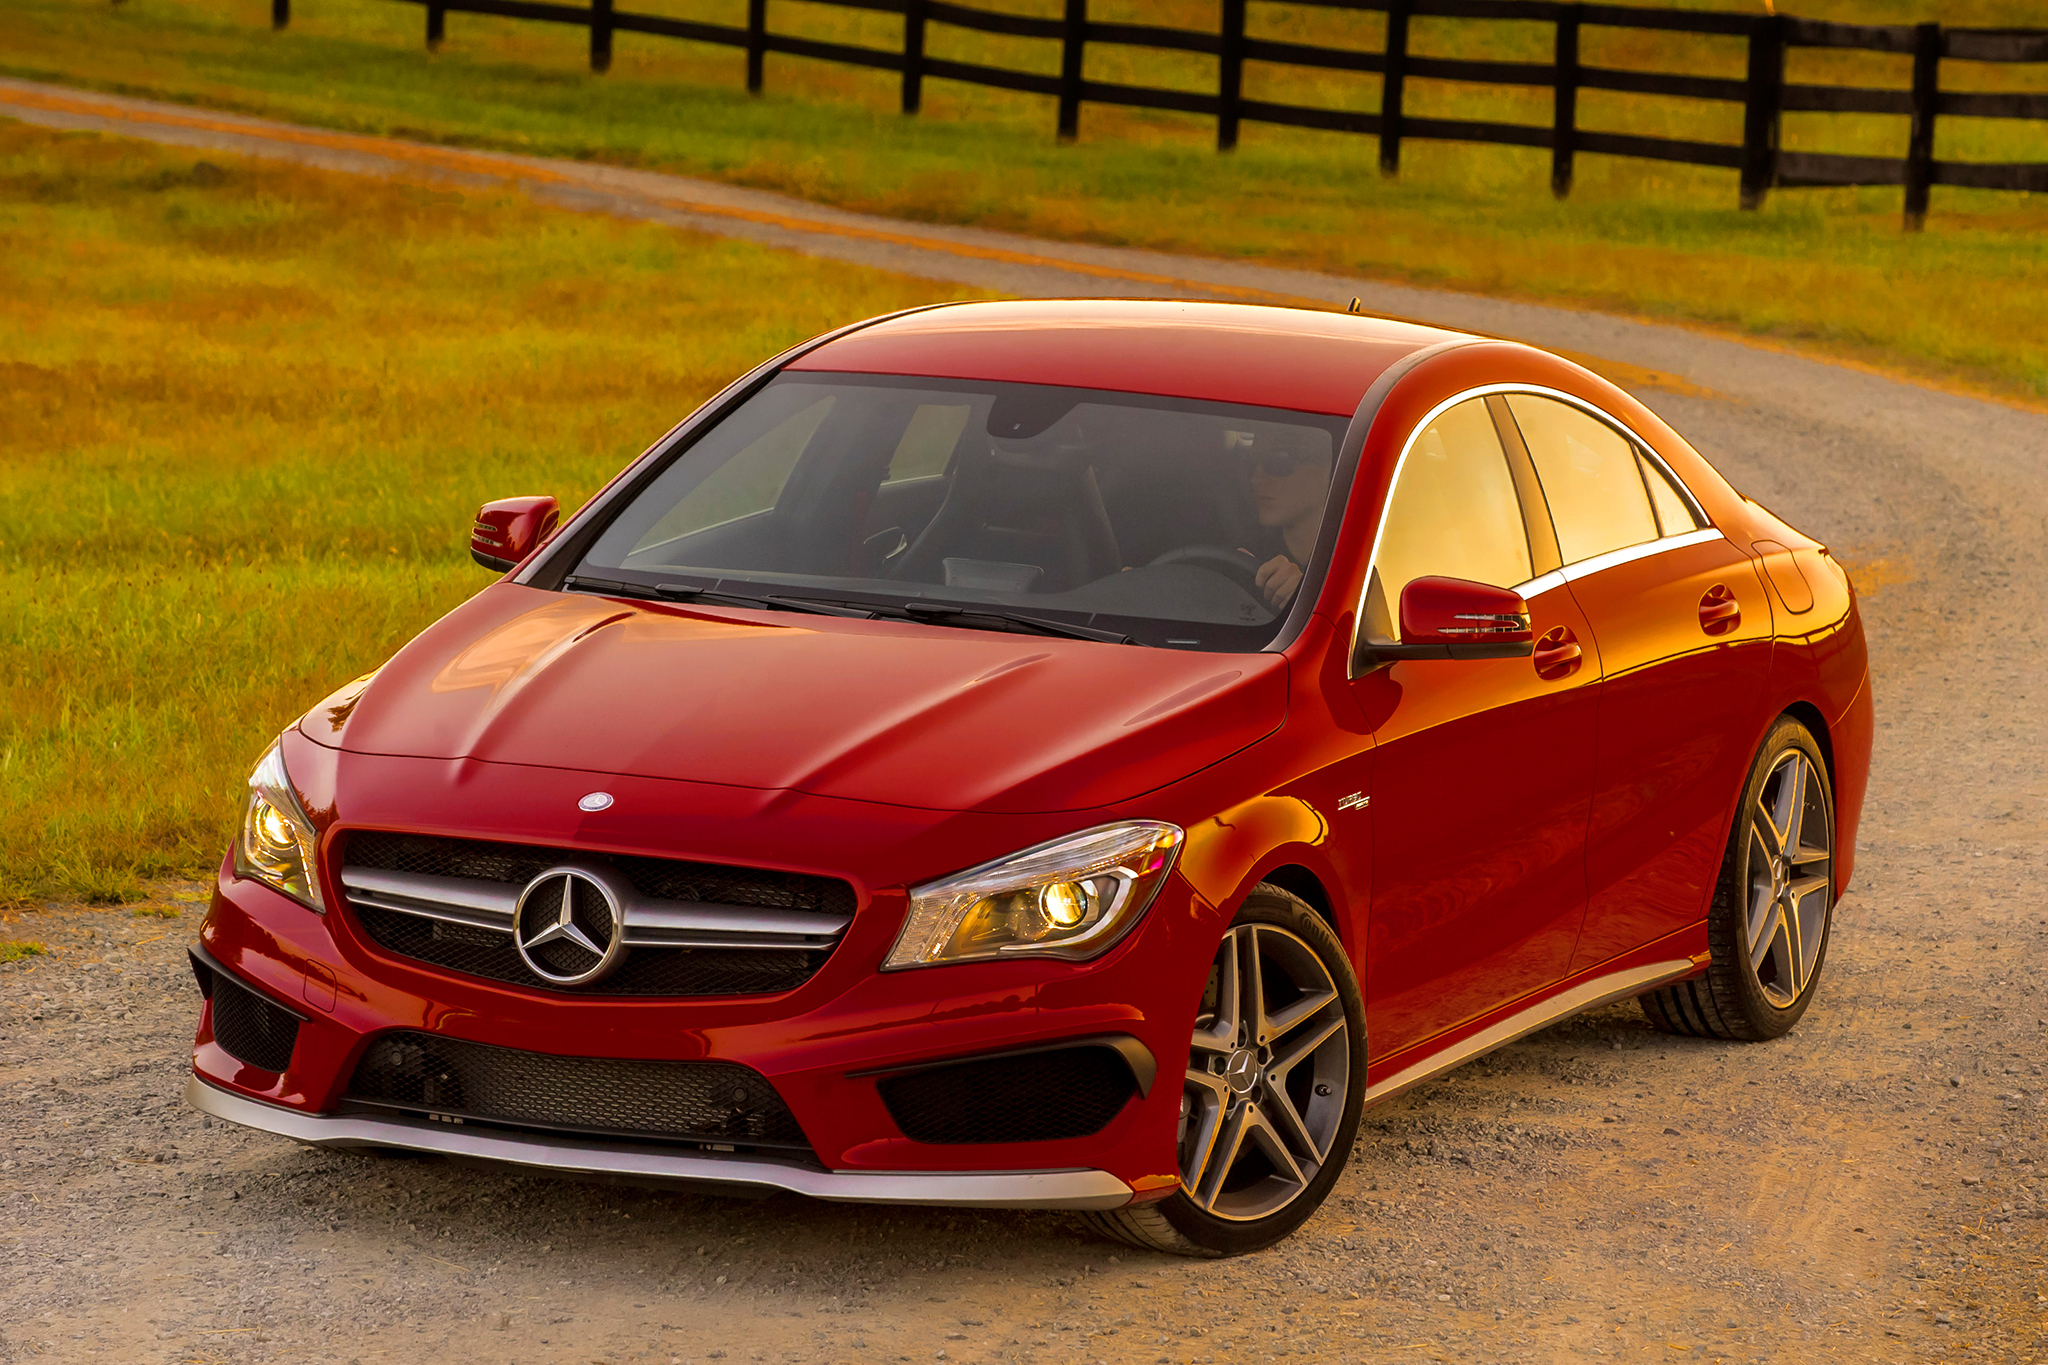 2014 Mercedes CLA45 AMG EPA-Rated 31 MPG, 0-60 MPH in 4.2 Seconds